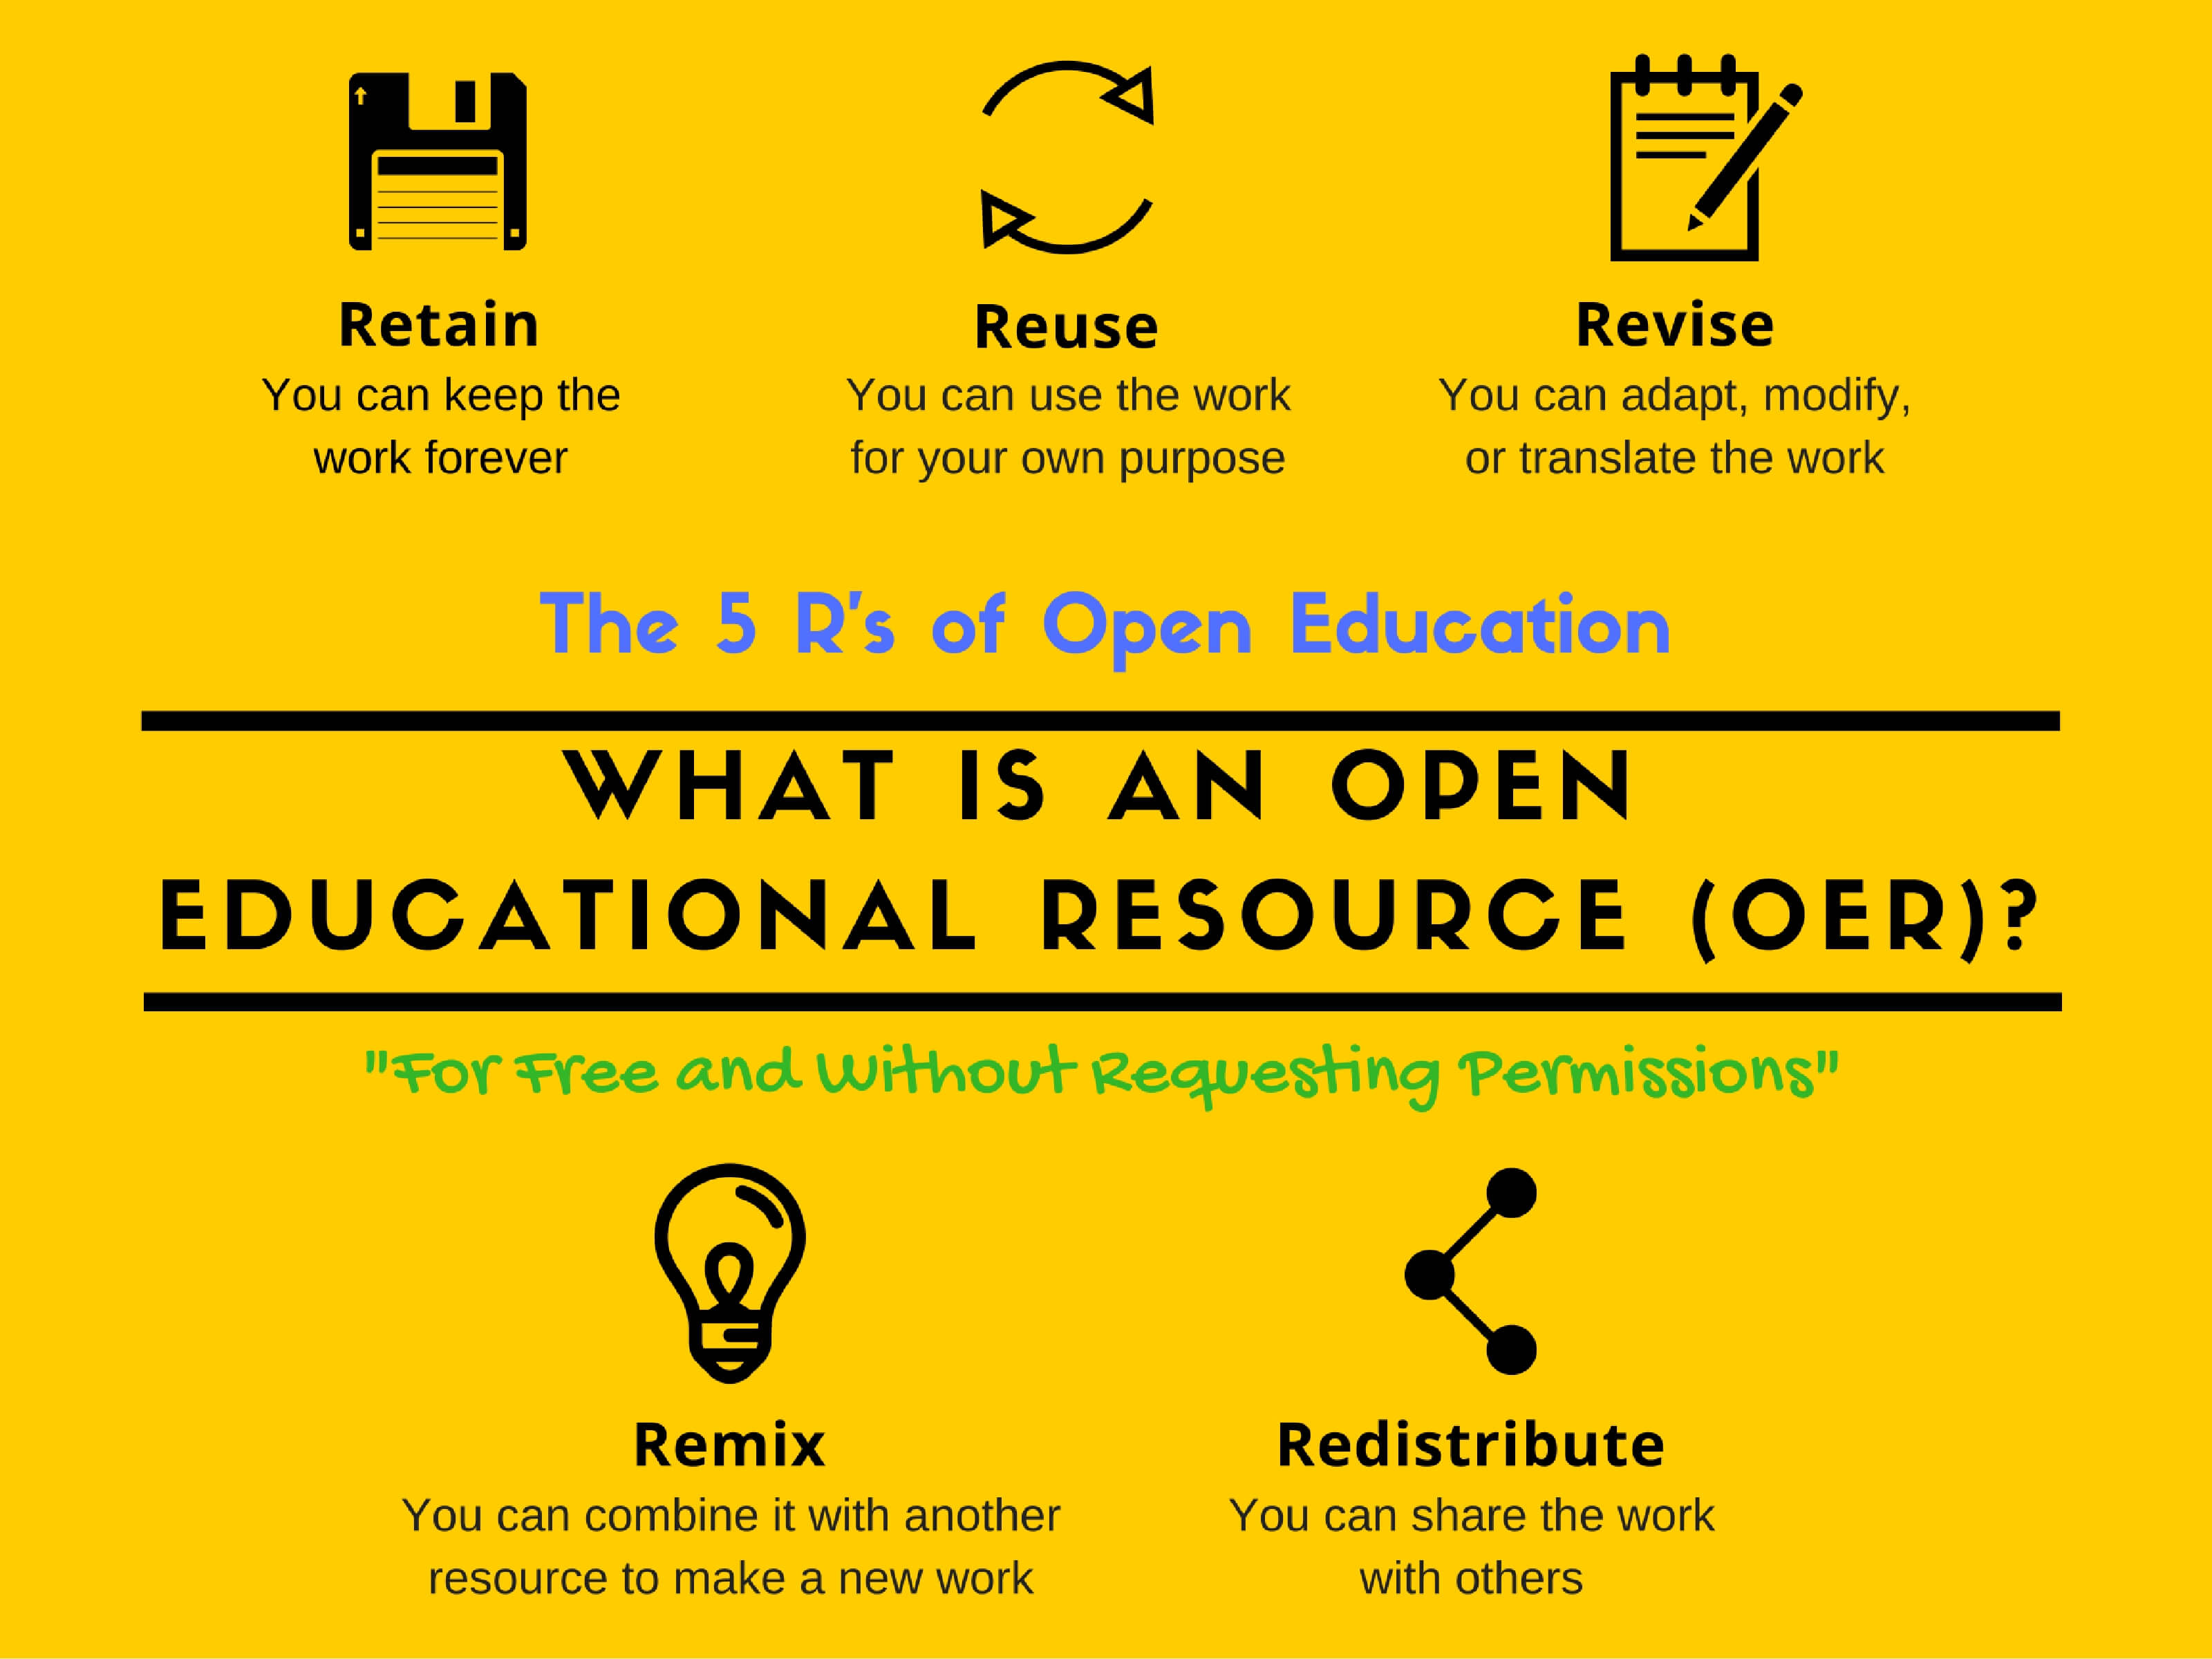 OER Infographic: Open Educational Resources can be used without requesting permission